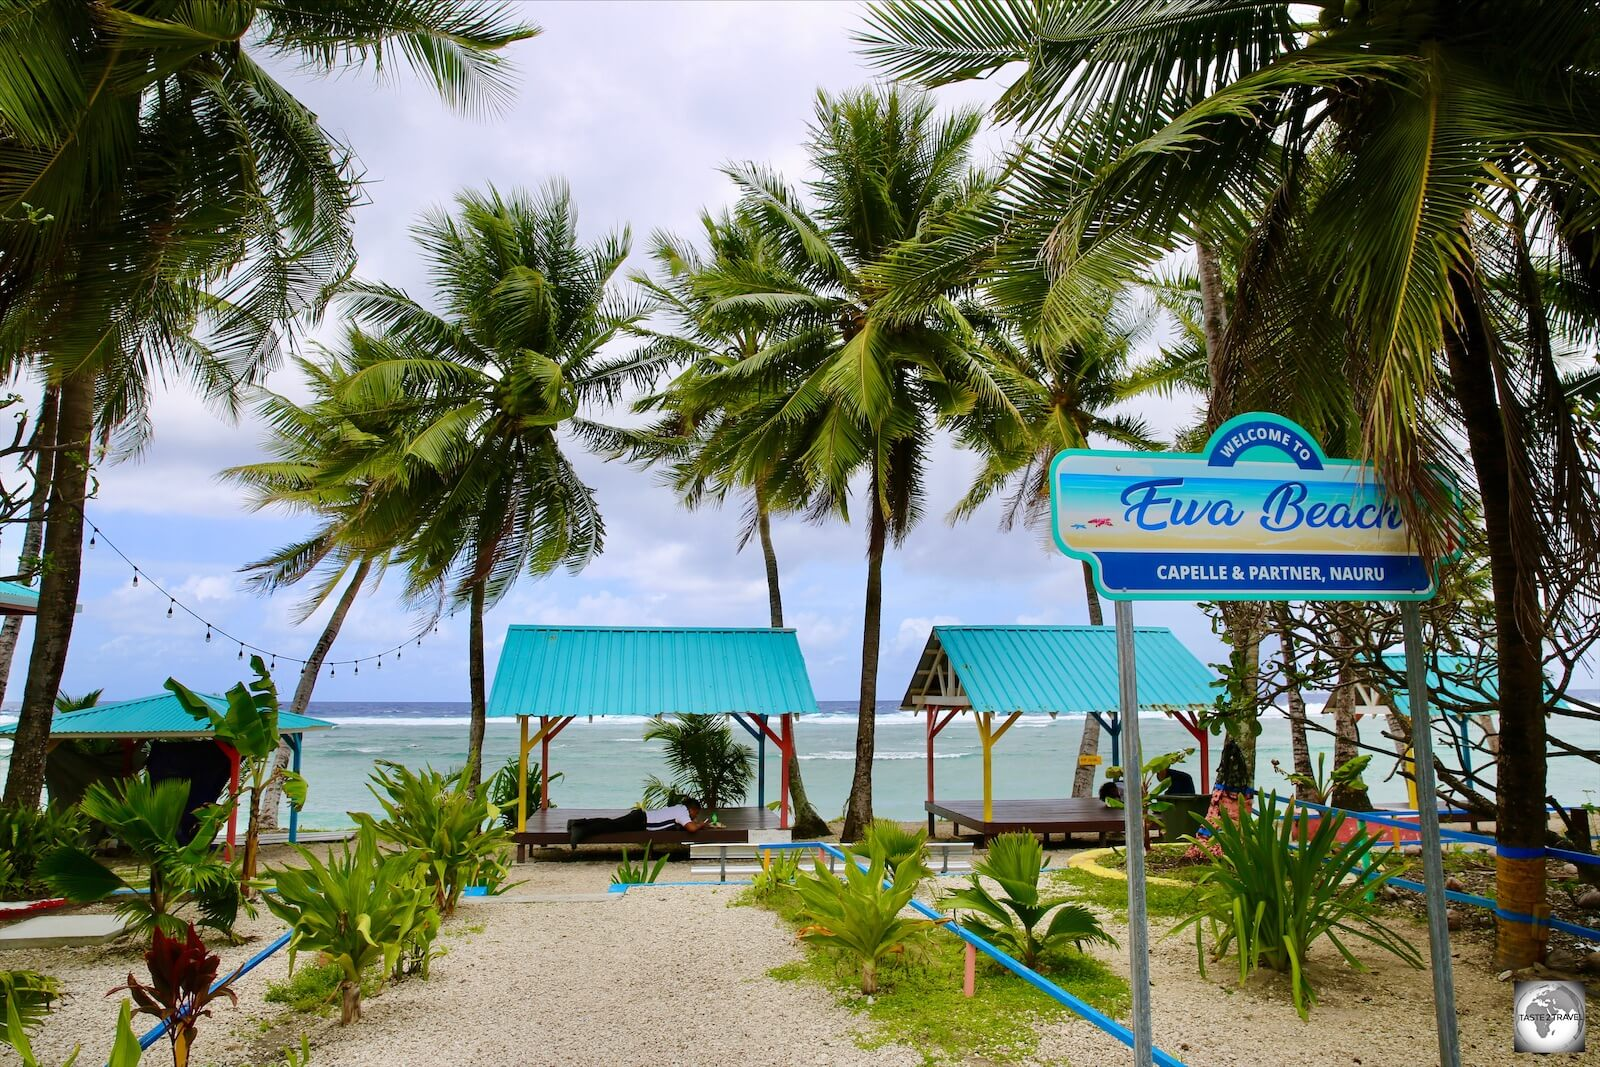 Located opposite the Capelle & Partner complex, Ewa beach is an ideal place to enjoy your takeaway meal or coffee from the Tropicana cafe.